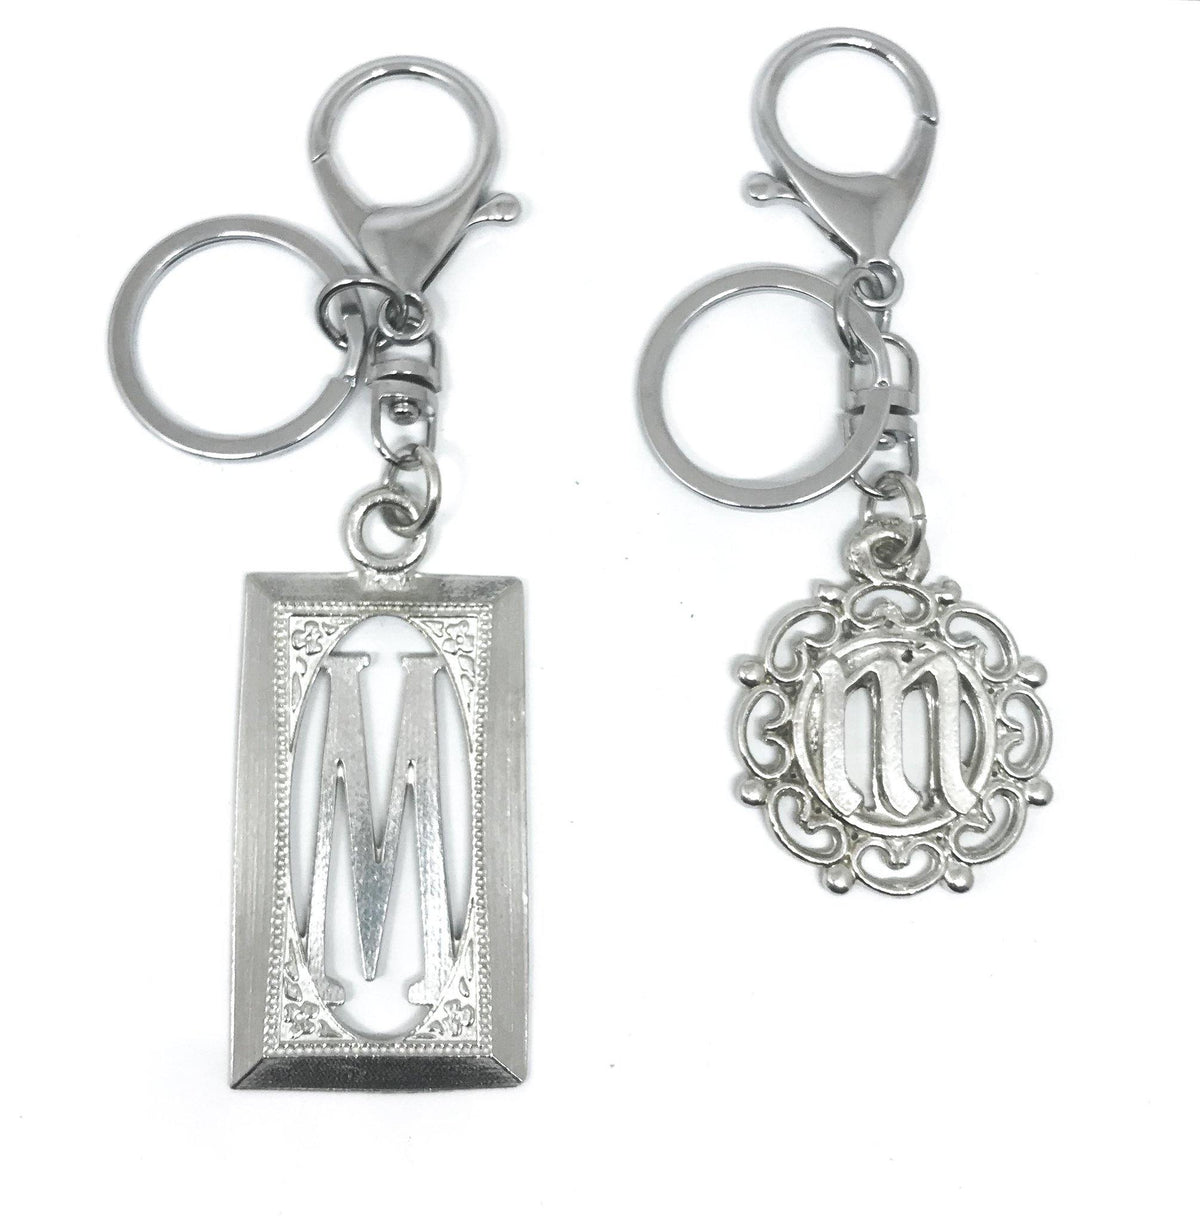 USA Handcrafted Circle Monogram Initial Keychain Bag Purse Charm Pewter Wedding Party Gift